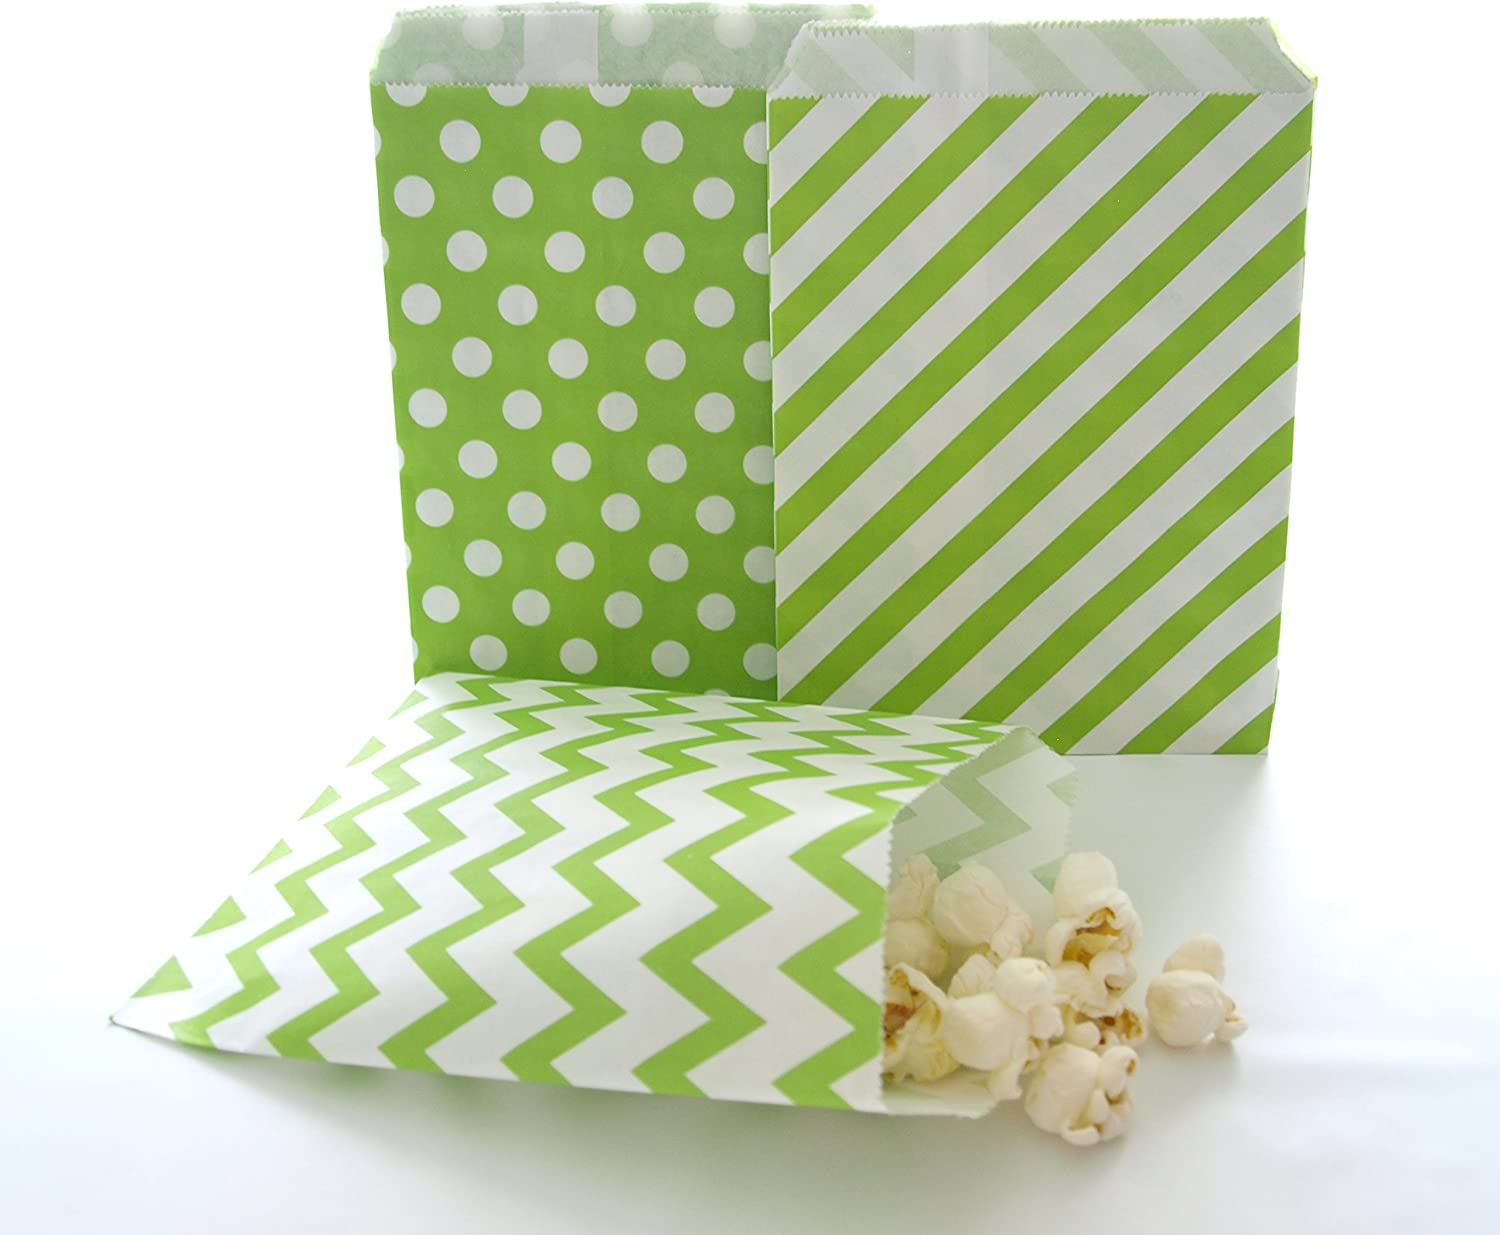 Amazon Com Green Gift Bags Christmas Candy Bags Small Party Favor Bags Candy Bag Ideas 75 Pack Green Striped Polka Dot Chevron Bags Kitchen Dining